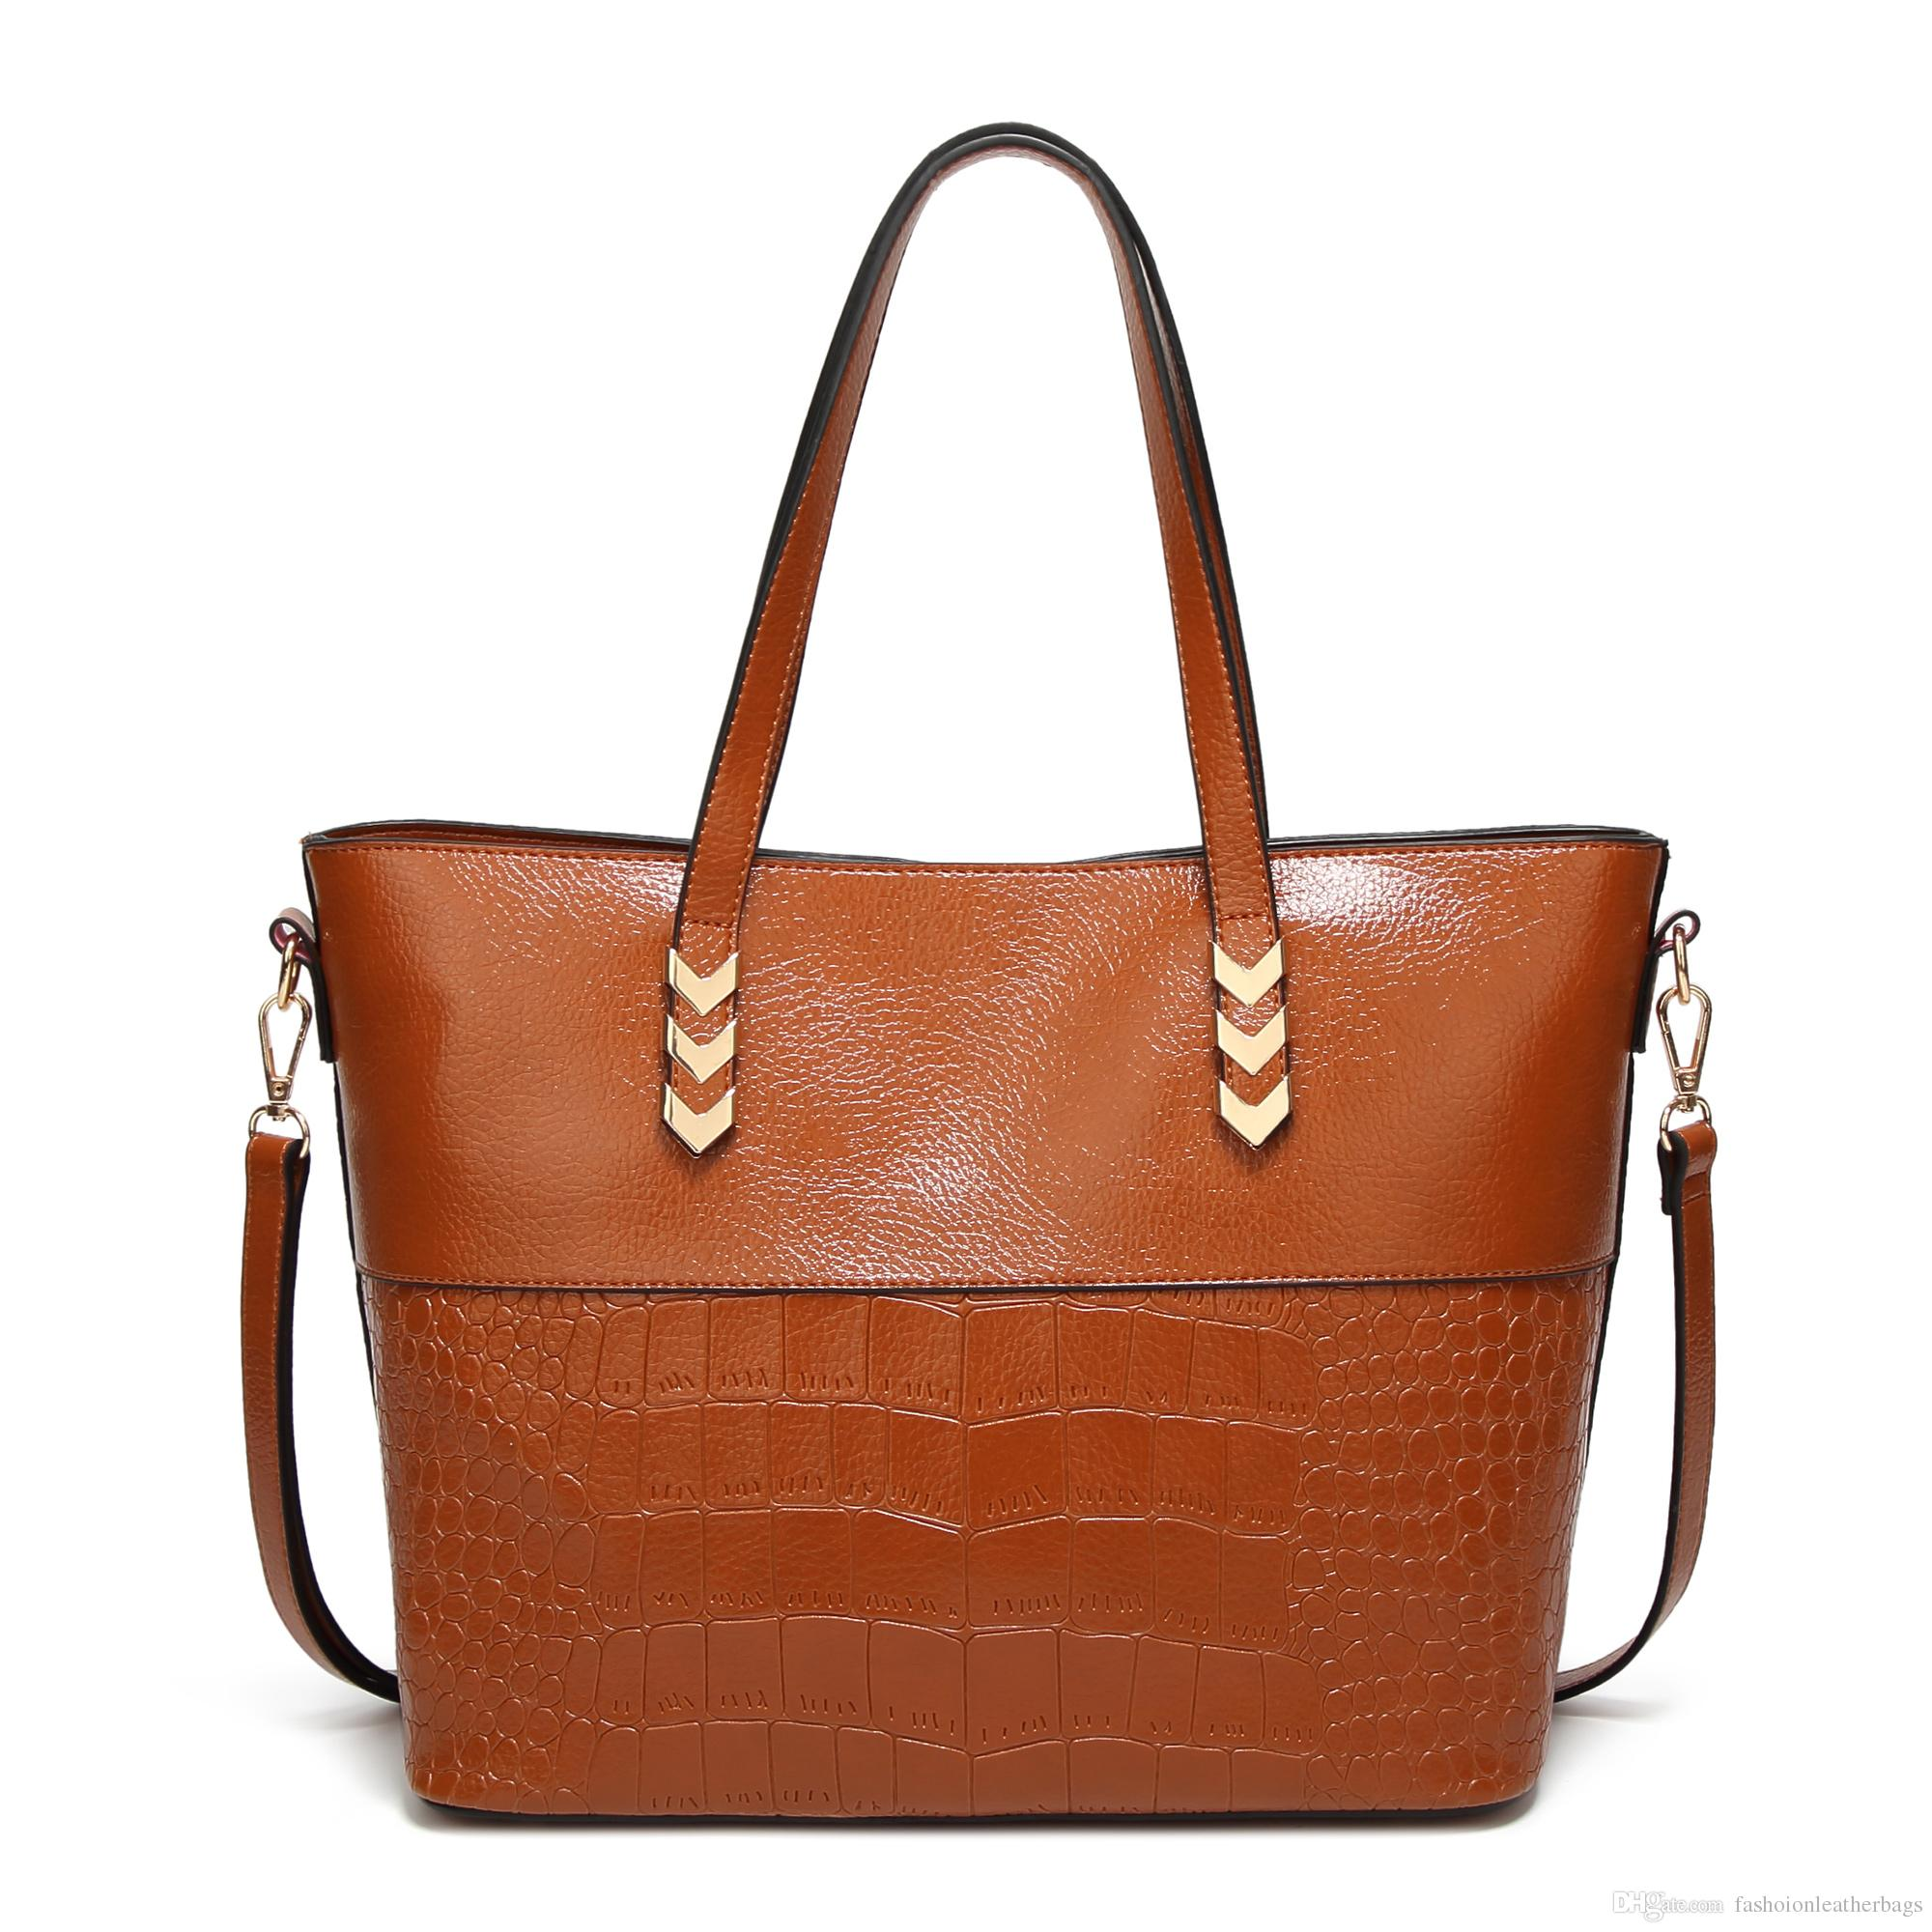 Lady Handbags Design Fashion PU Totes, Women Wholesale Collection FS6261  Womens Handbags Body Bags From Fashoionleatherbags,  8.23  DHgate.Com 74e047ef42